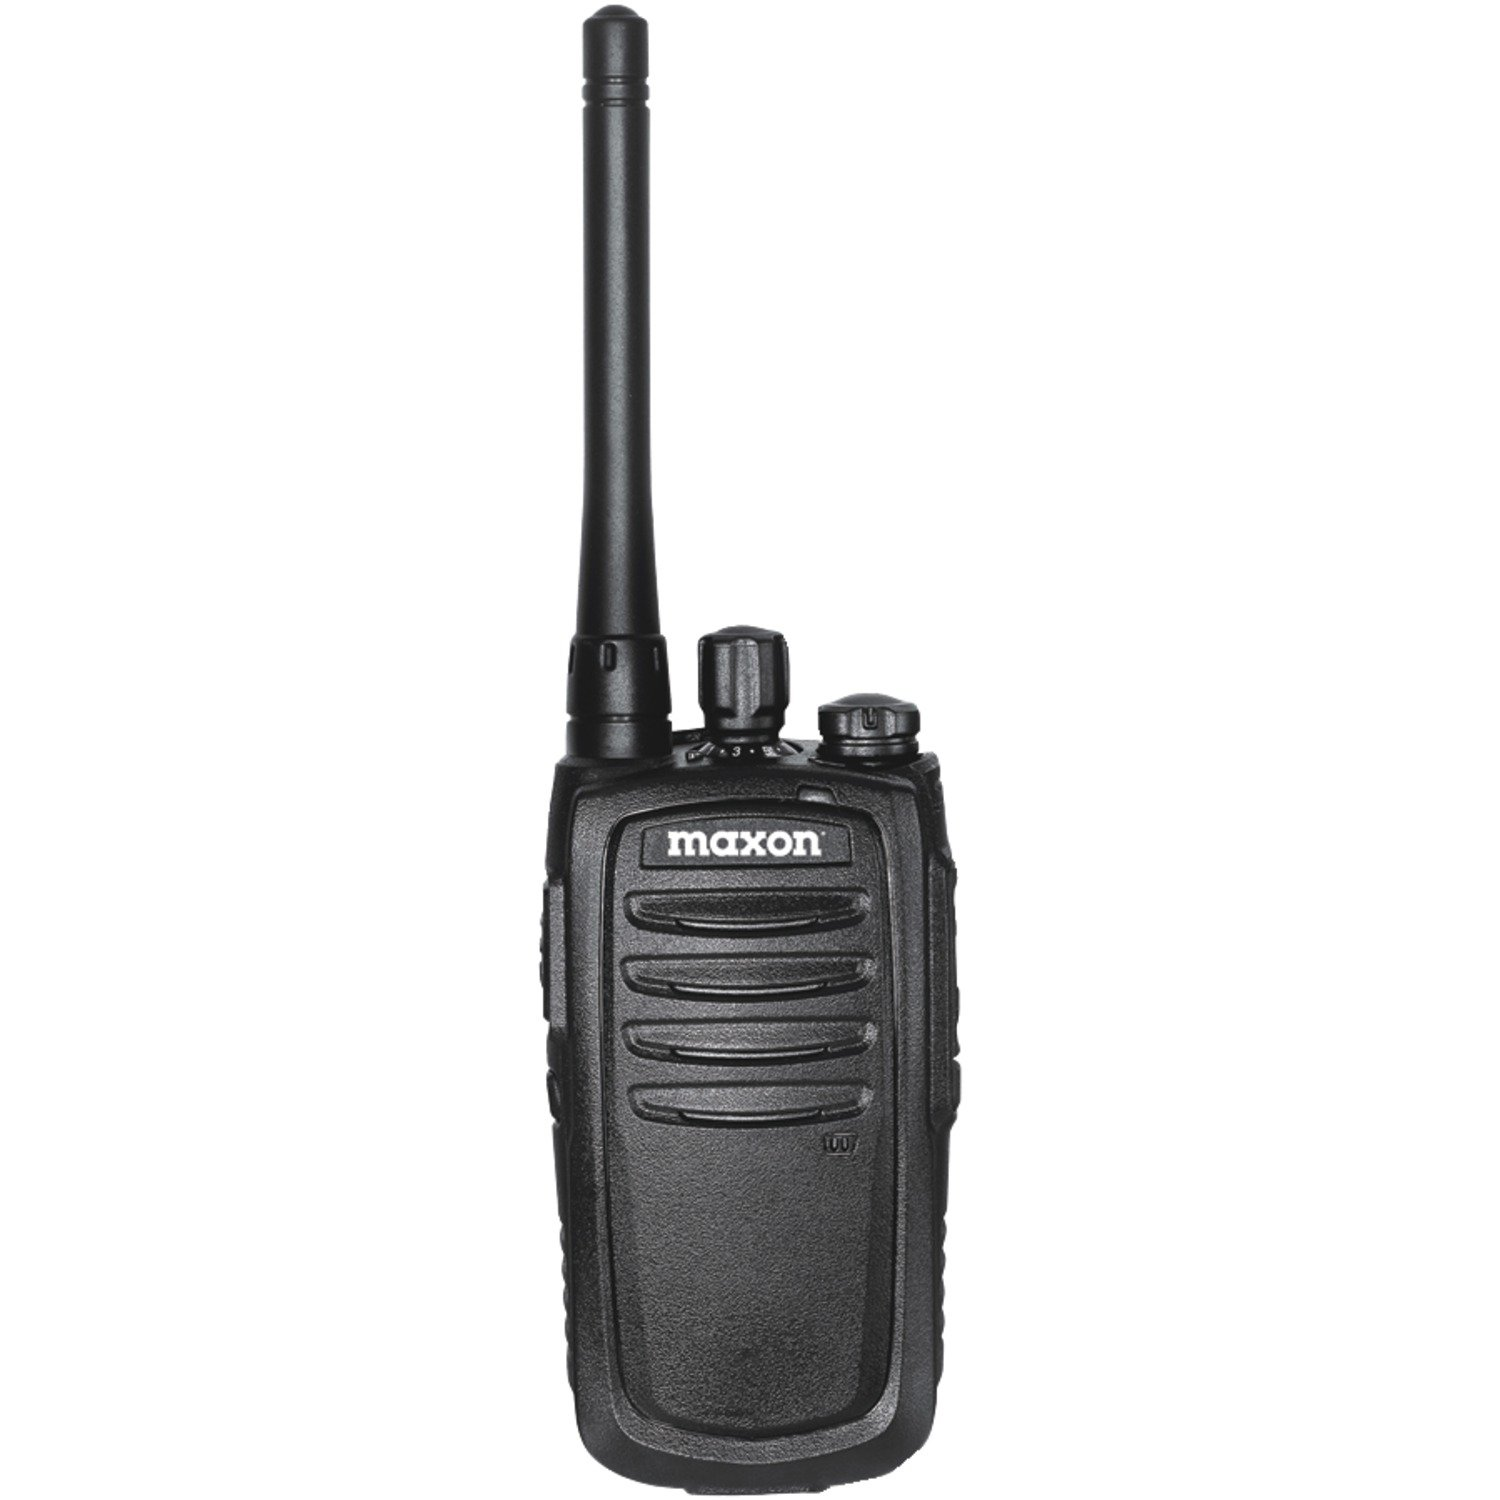 TECNET TS-2116 VHF 2-Watt 2-Way Business Radio